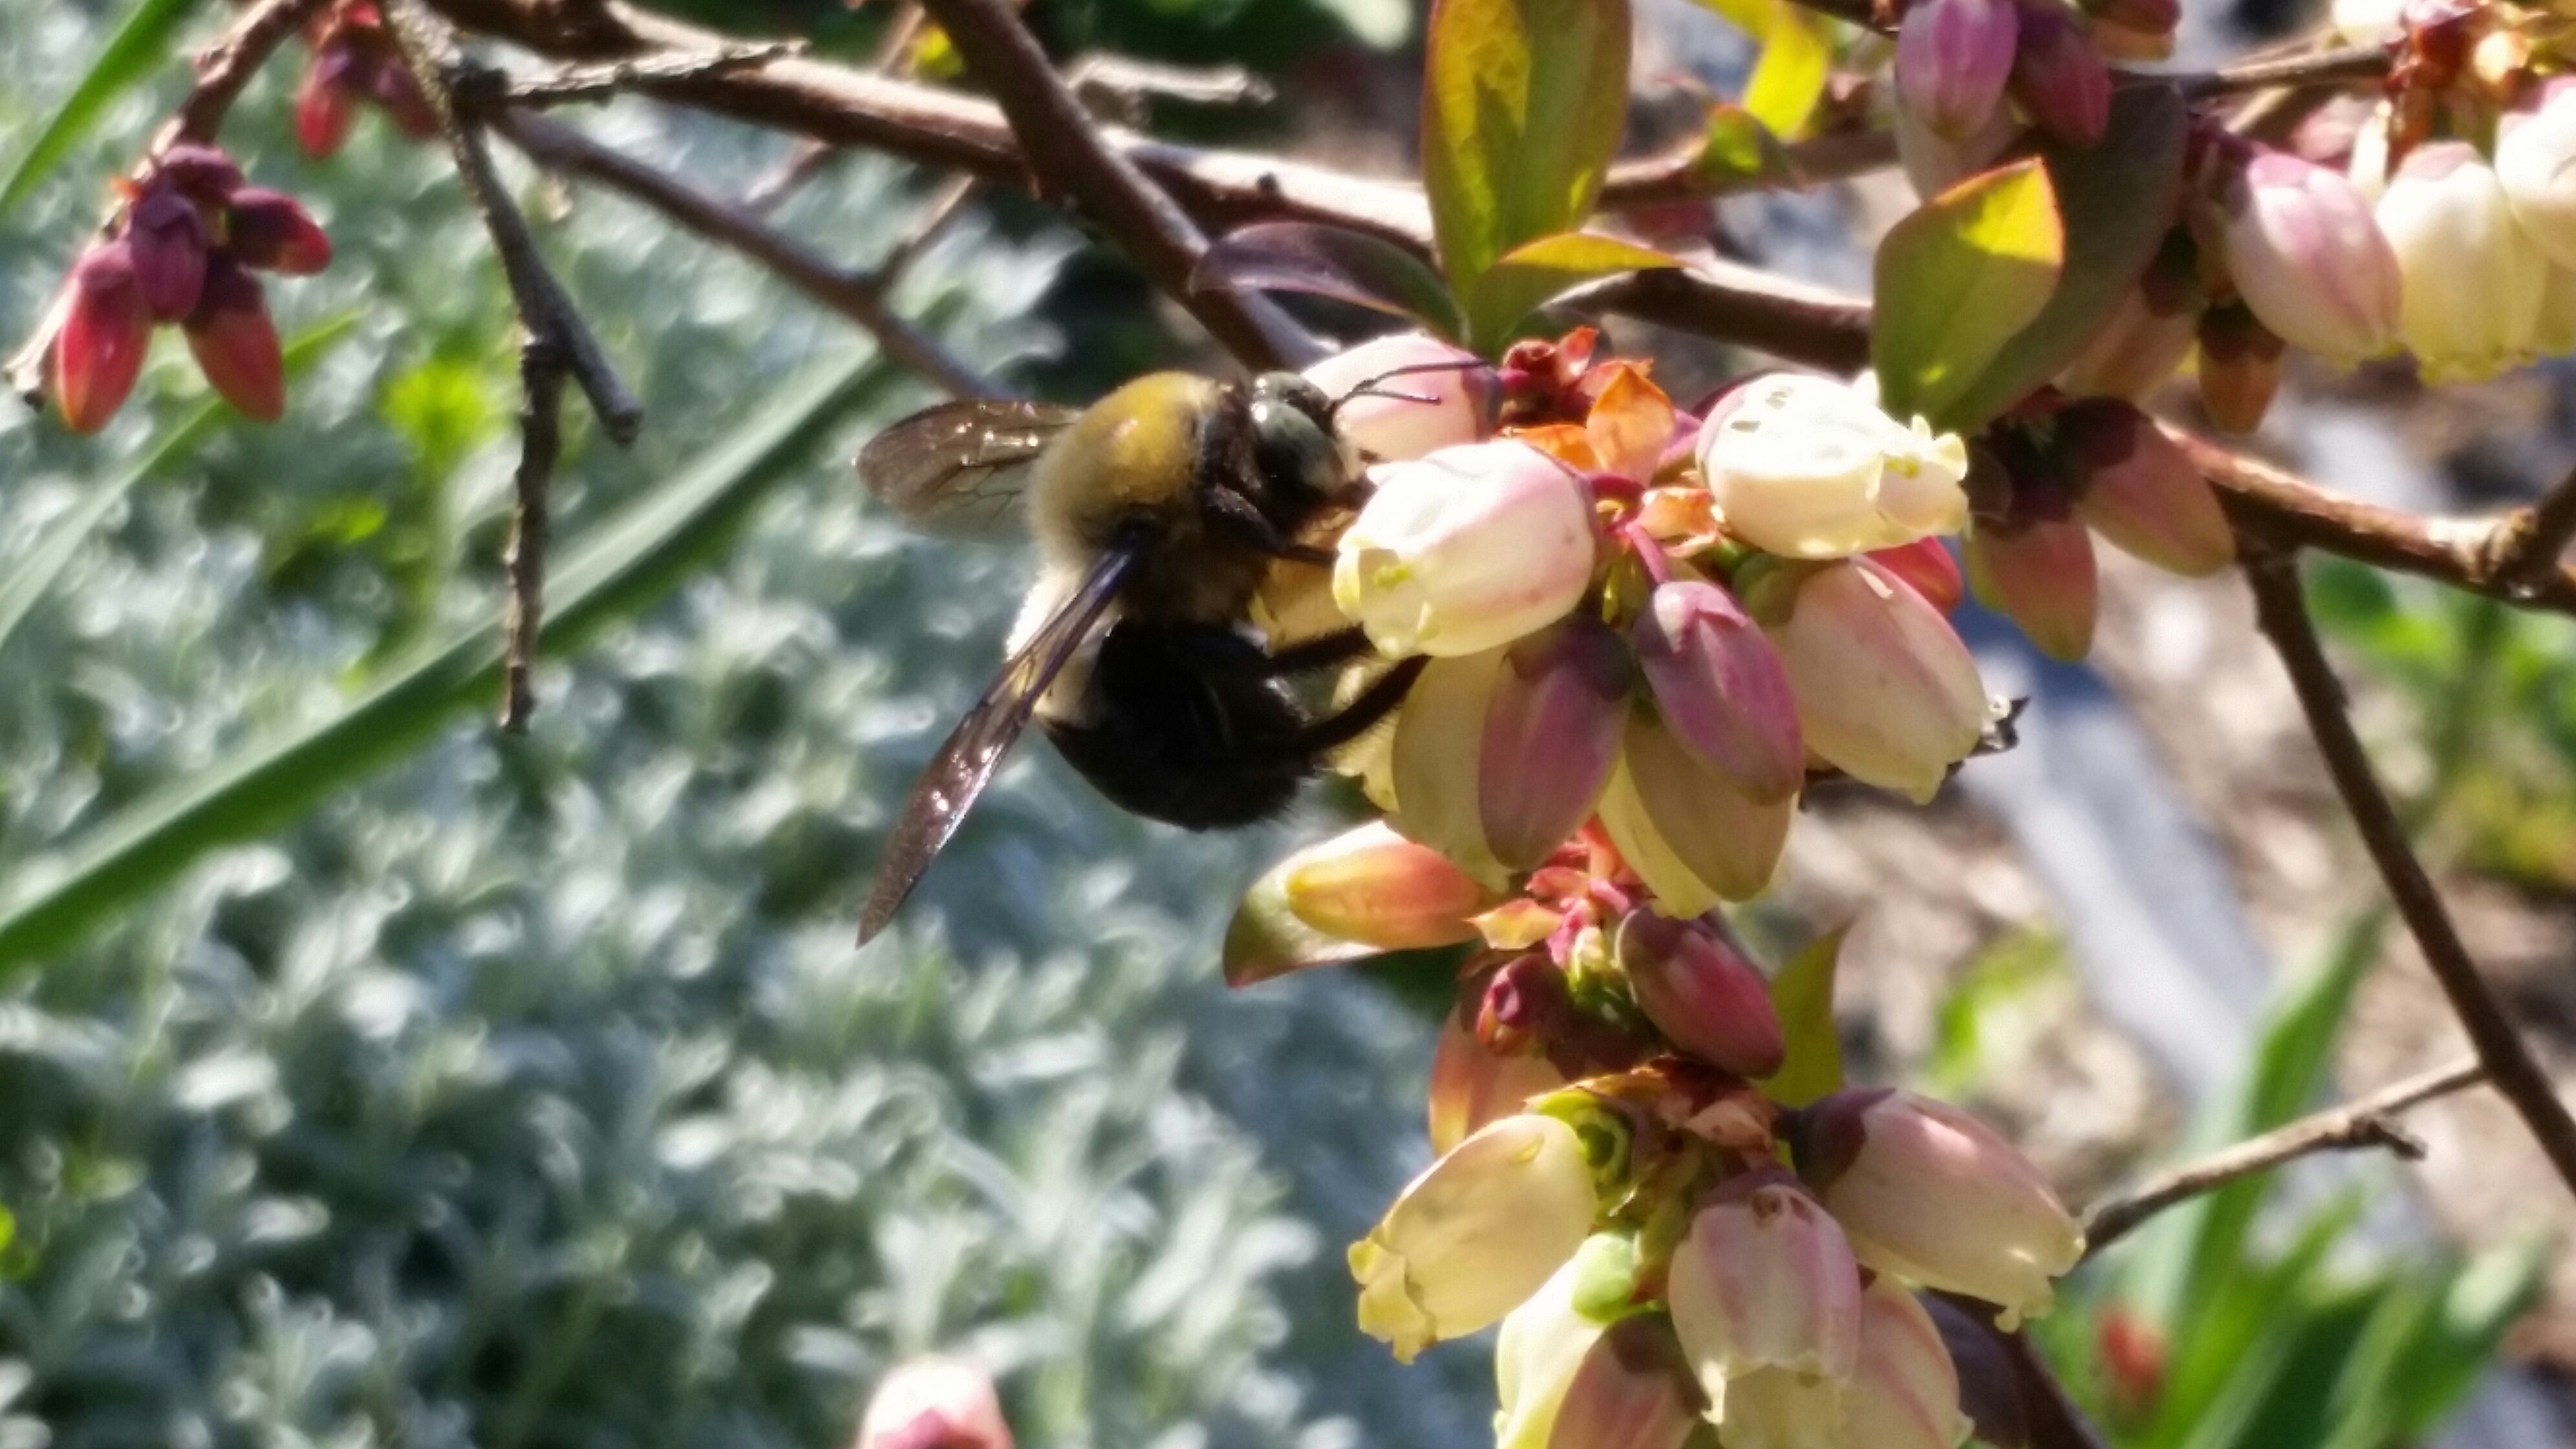 The Bumblebees Are Working Hard to Prepare Delicious Blueberries for You!